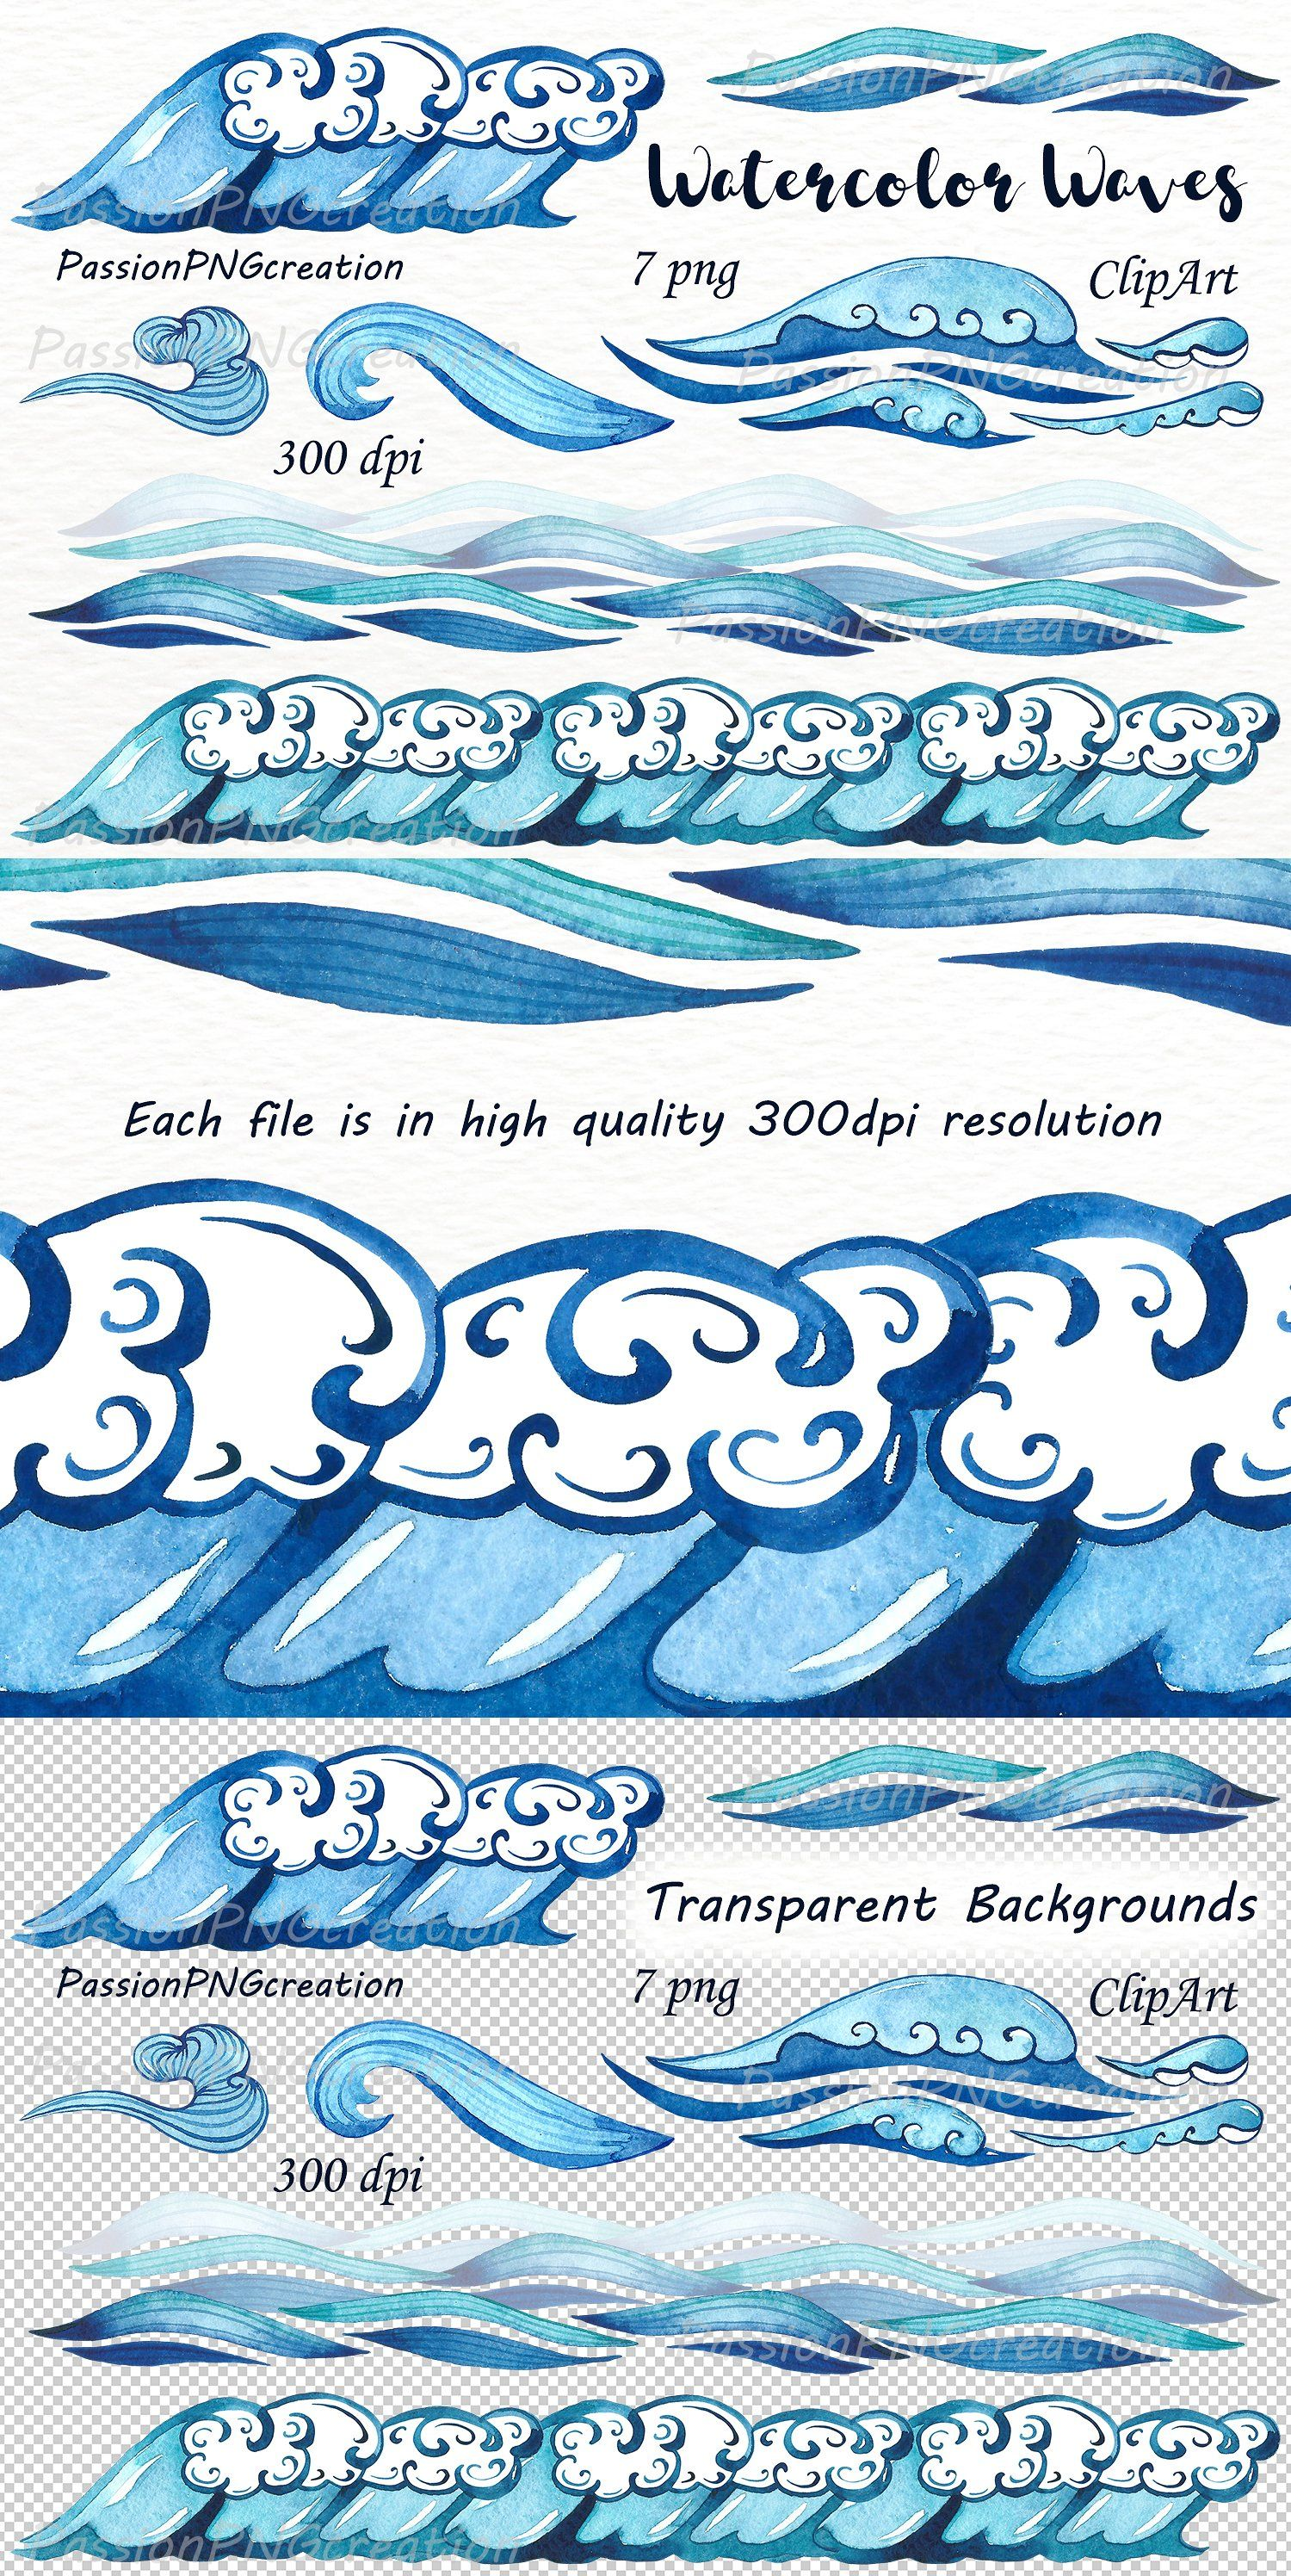 Watercolor Waves Borders Clipart Clip art borders